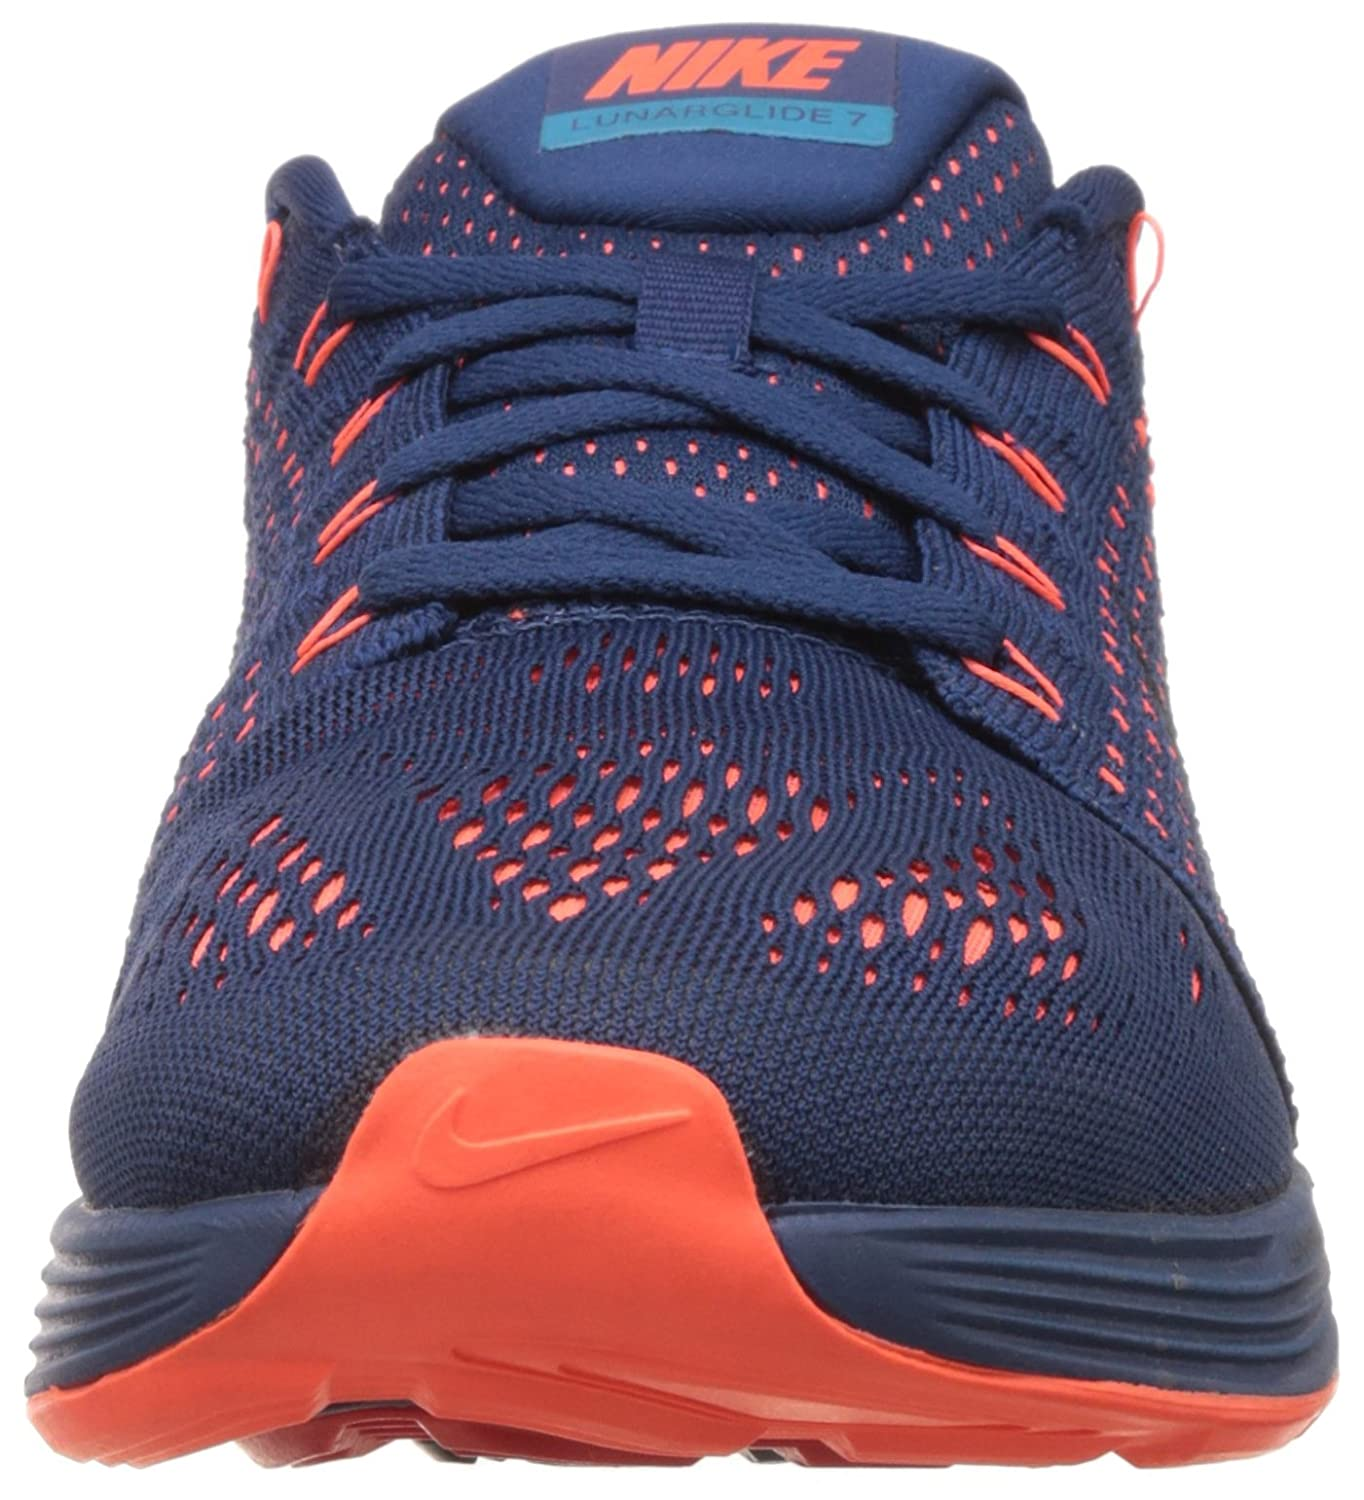 competitive price ced01 15be1 ... Nike Lunarglide 7, Mens Sports shoes Amazon.co.uk Shoes Bag ...